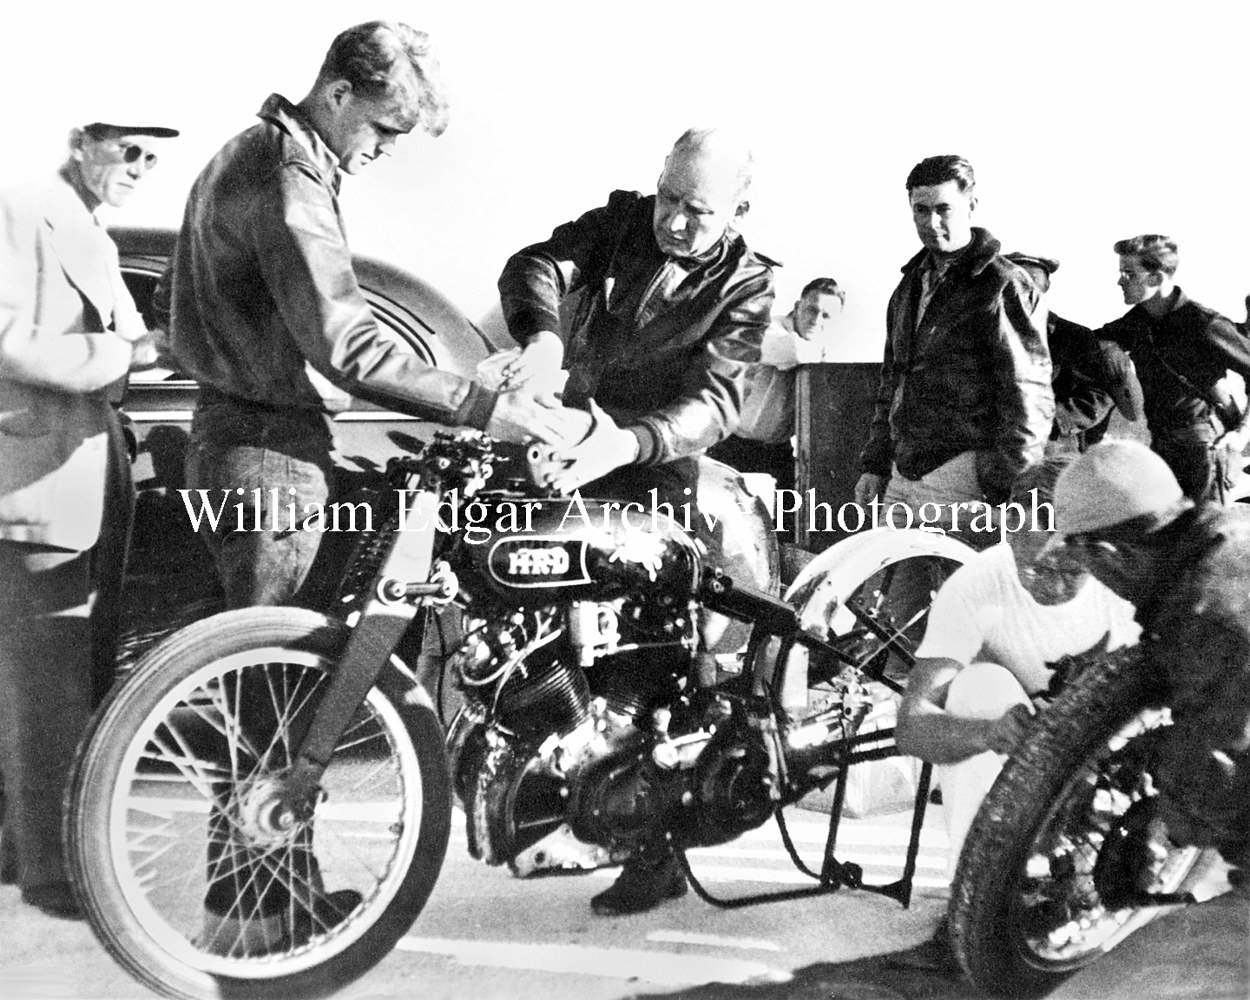 Photography [VH-JEAF8] John Edgar watches Rollie Free fuel the Edgar Vincent HRD at Bonneville - September 13, 1948 by William Edgar